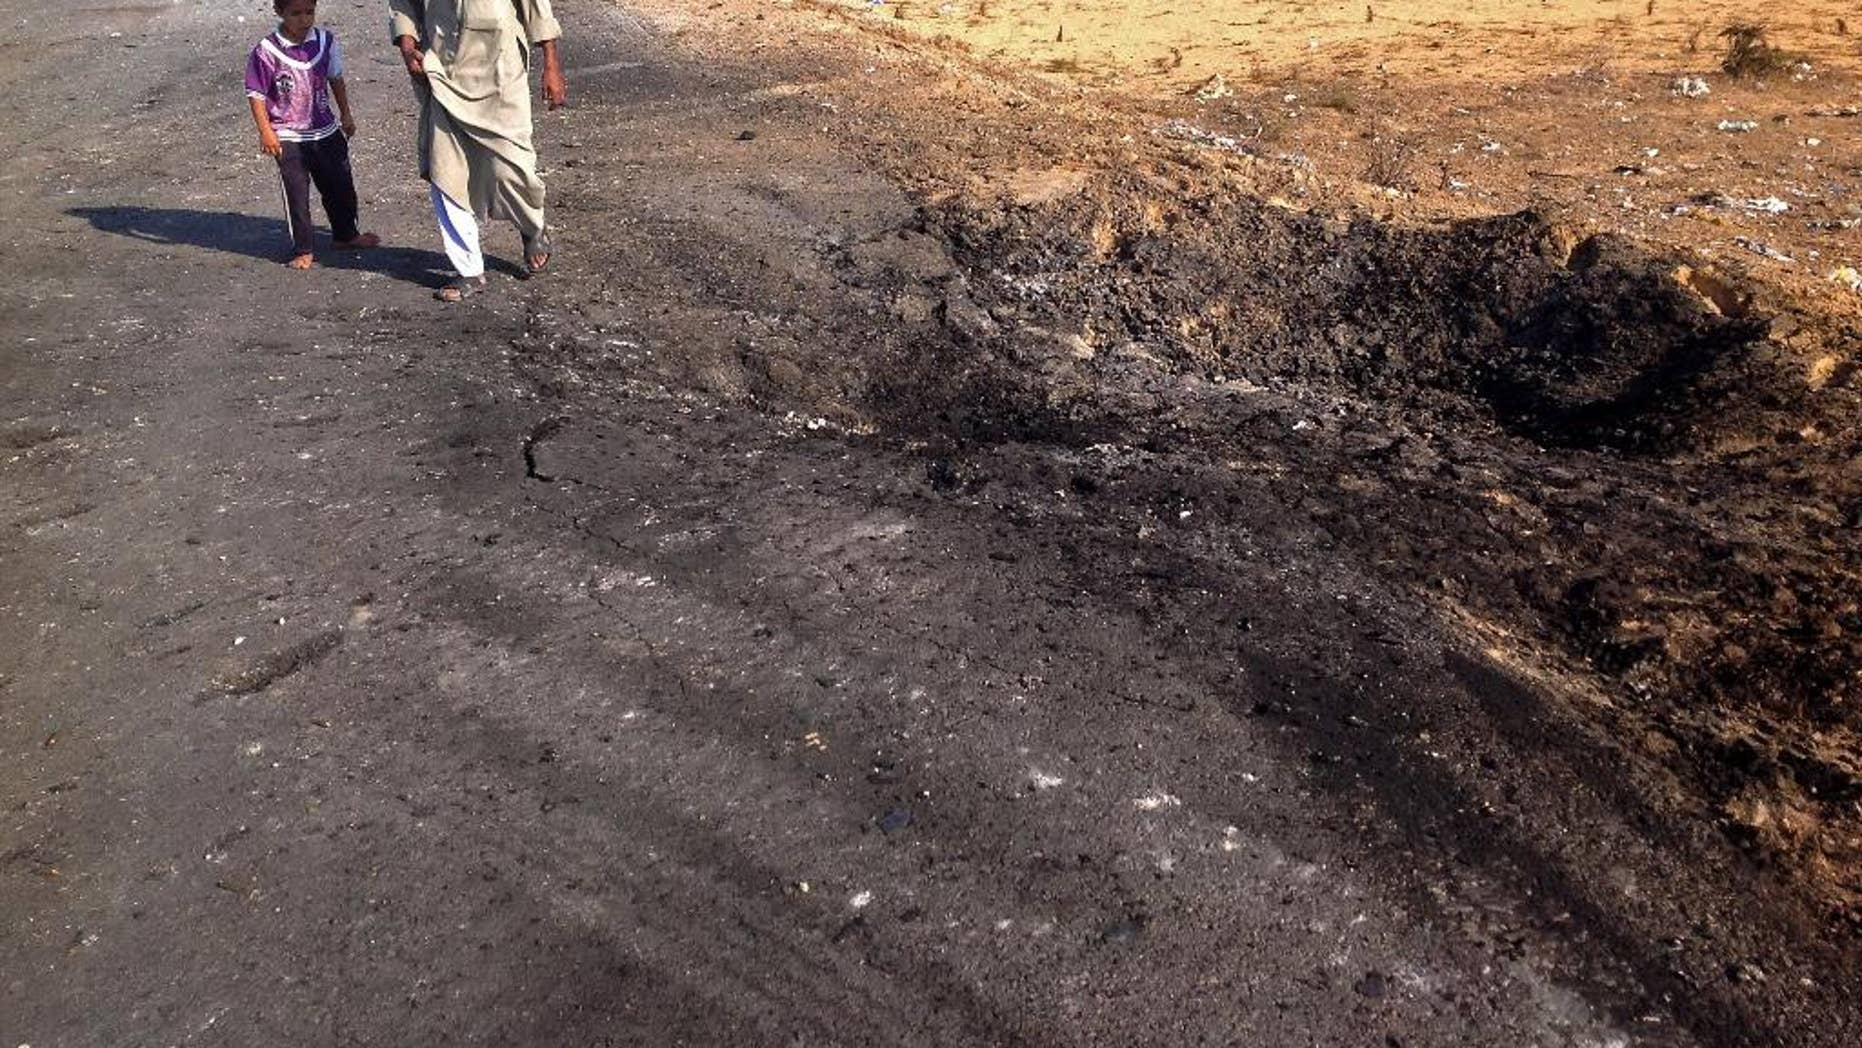 FILE - In this Nov. 20, 2013 file photo, a man and child walk past a crater from a suicide car bomb attack on the road between the border town of Rafah and the coastal city of el-Arish, Egypt. Egyptian authorities on Tuesday, Oct. 28, 2014, ordered residents living along the country's eastern border with the Gaza Strip to evacuate so they can demolish their homes and set up a buffer zone to stop weapons and militant trafficking between Egypt and the Palestinian territory, officials said. The measure comes four days after militants attacked an army post, killing at least 31 soldiers in the restive area in the northeastern corner of the Sinai Peninsula. (AP Photo/Ahmed Abu Deraa, File)